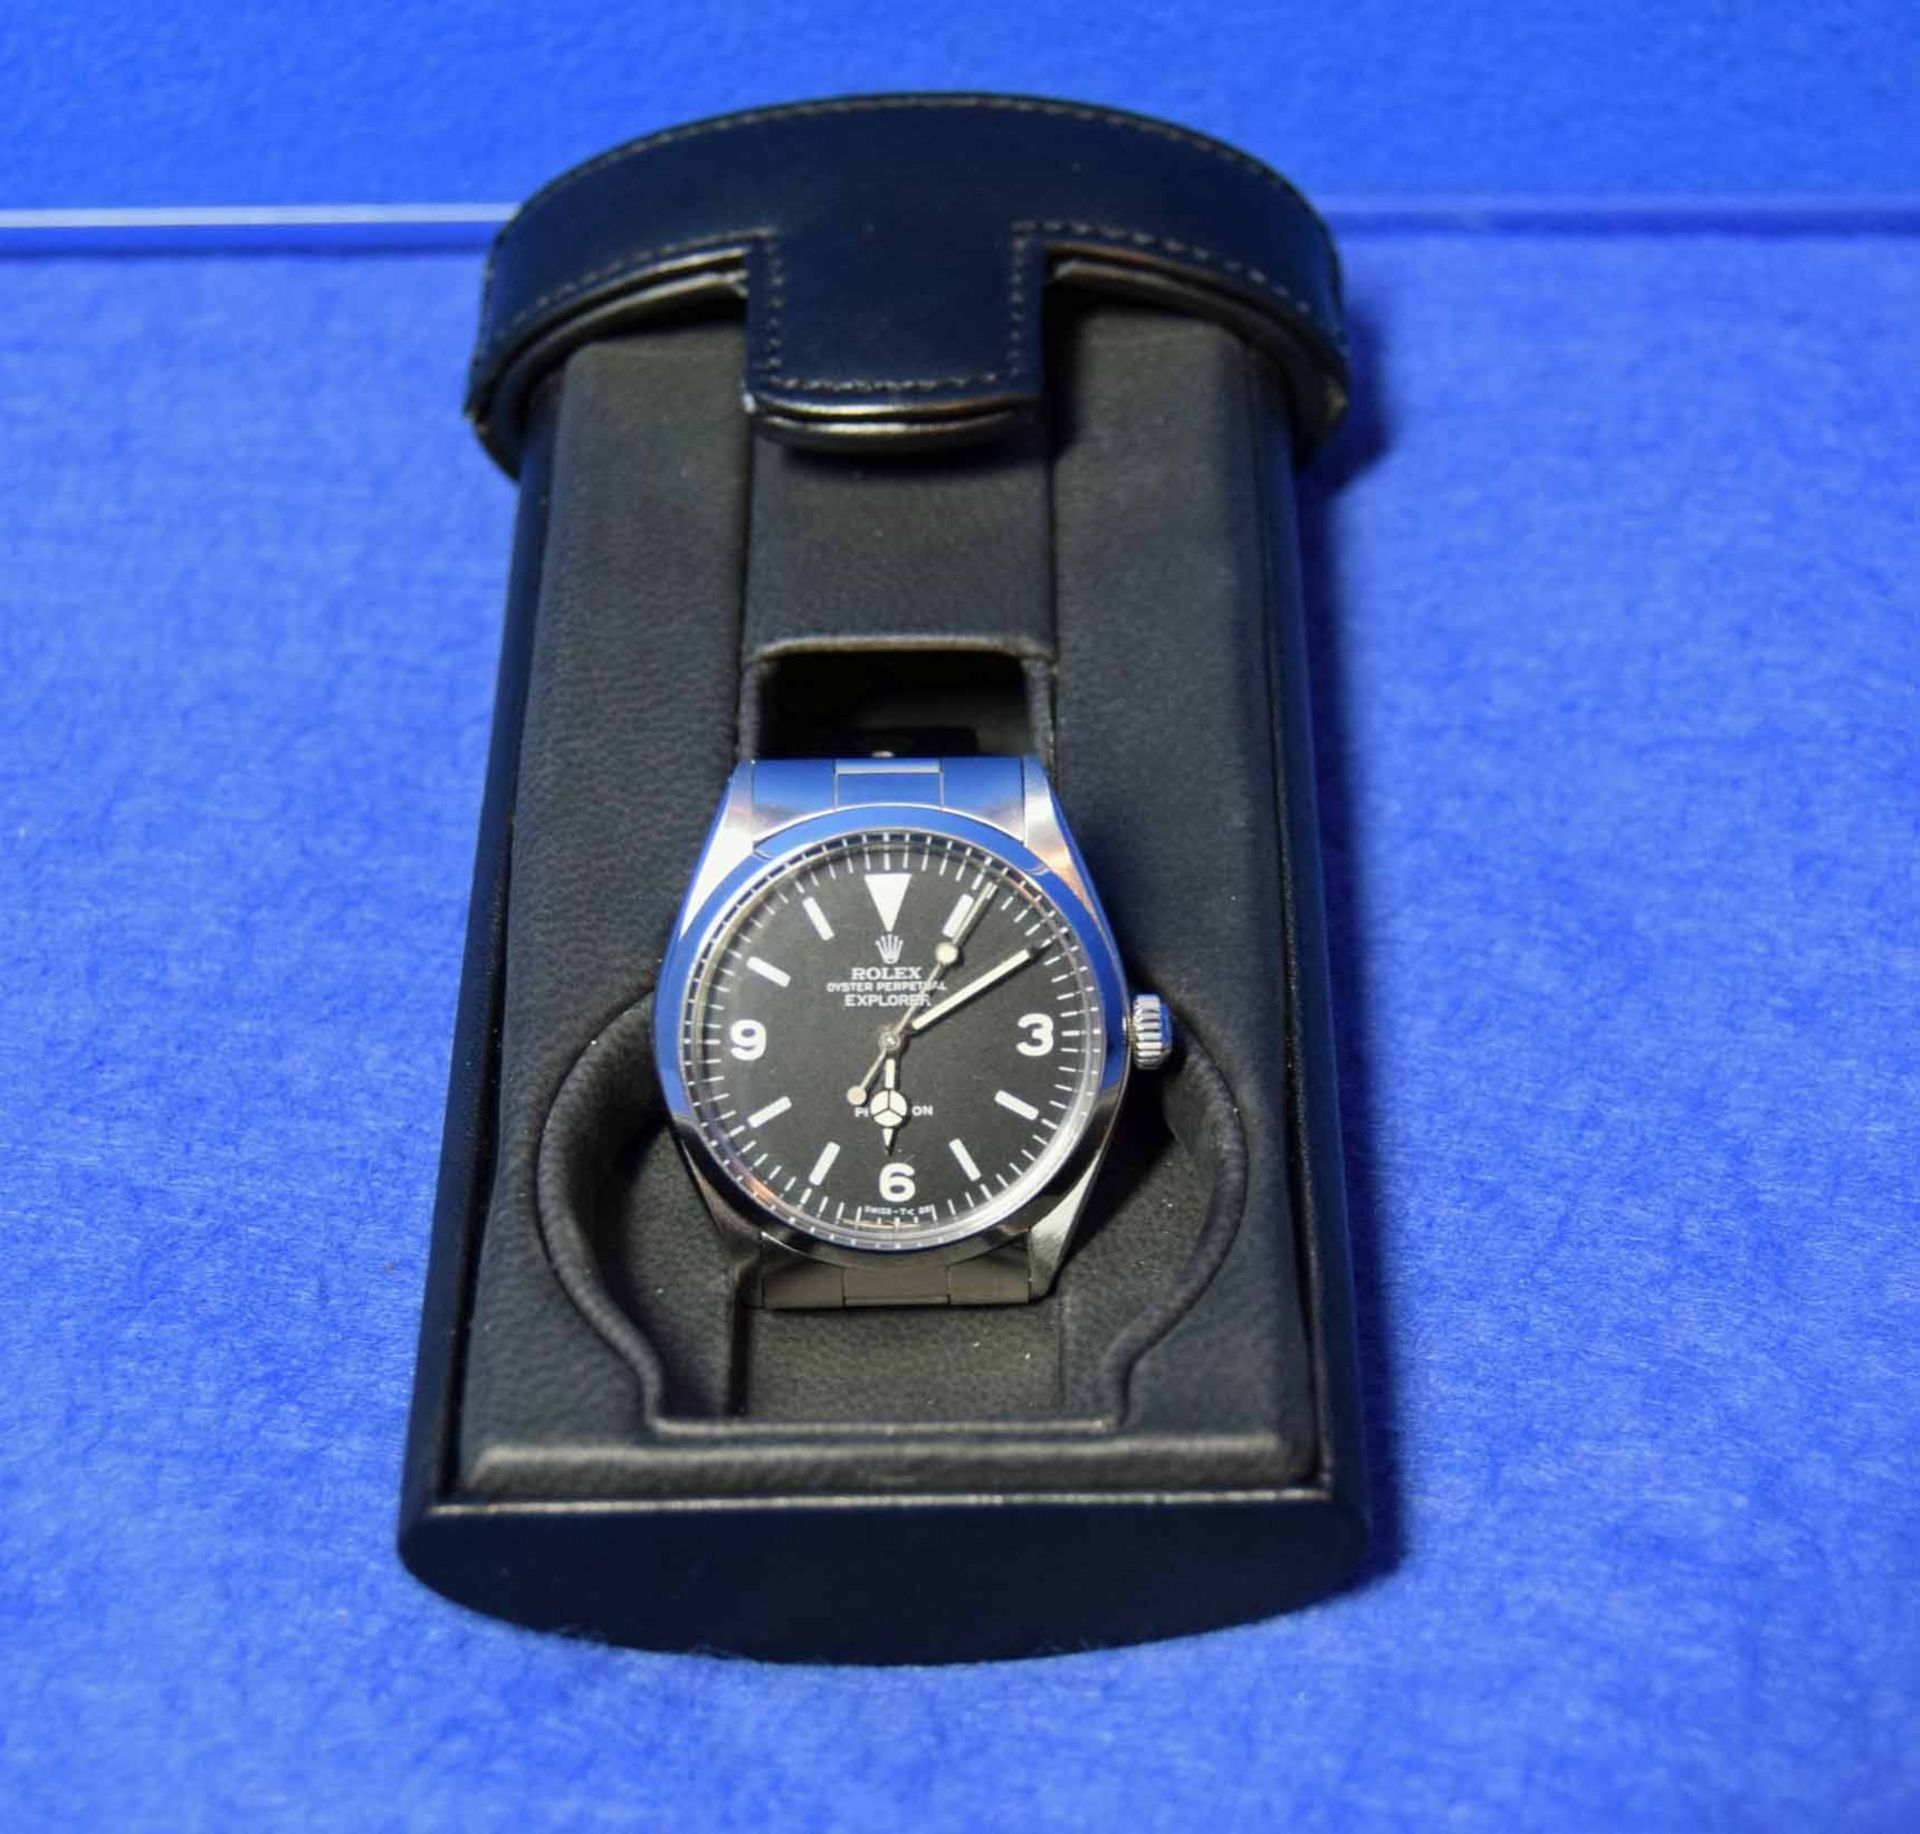 A ROLEX Explorer Watch in a 36mm dia. Oyster Steel Case, a Black Dial Large Hour Markers and - Image 5 of 6